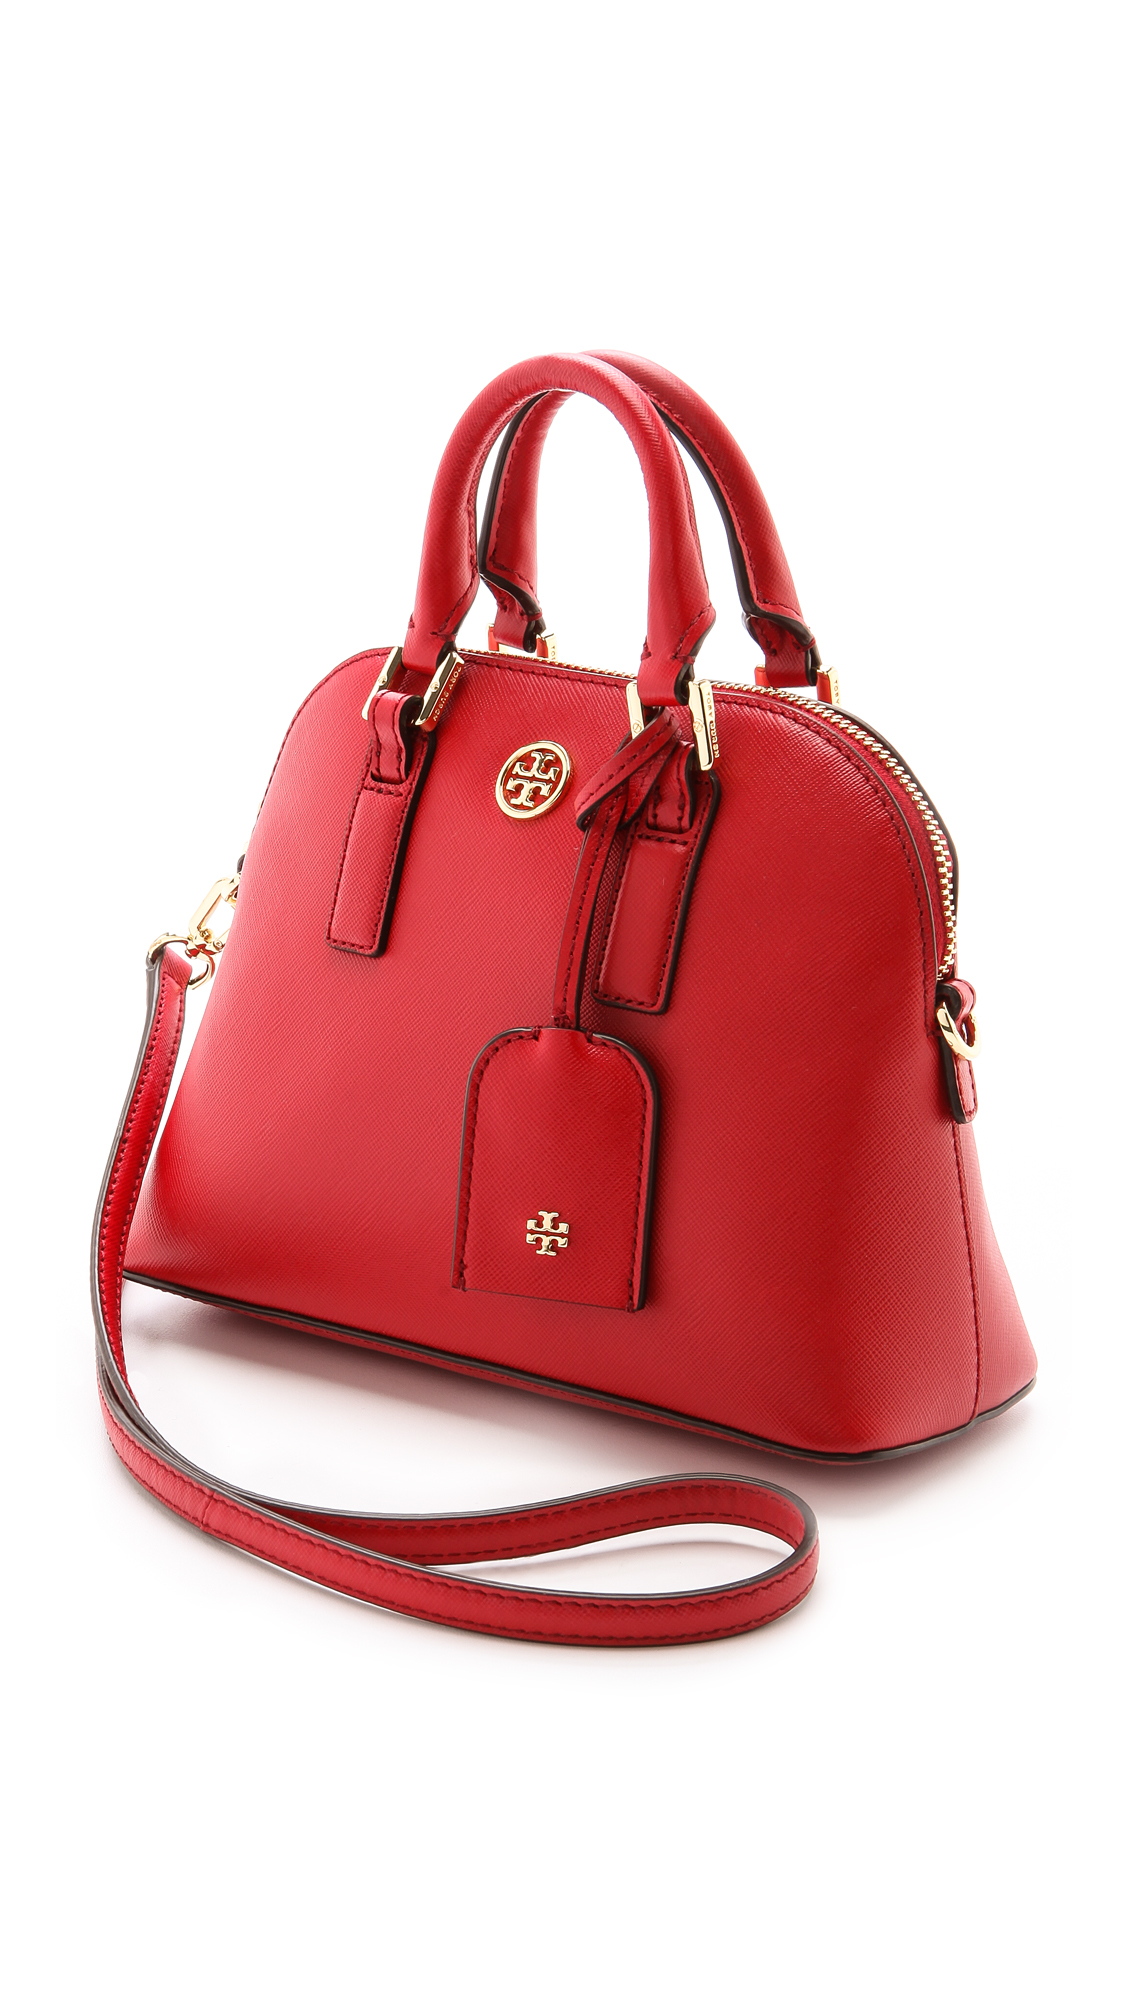 6ccc20ecceb4 Lyst - Tory Burch Robinson Mini Dome Satchel - Jelly Blue in Red